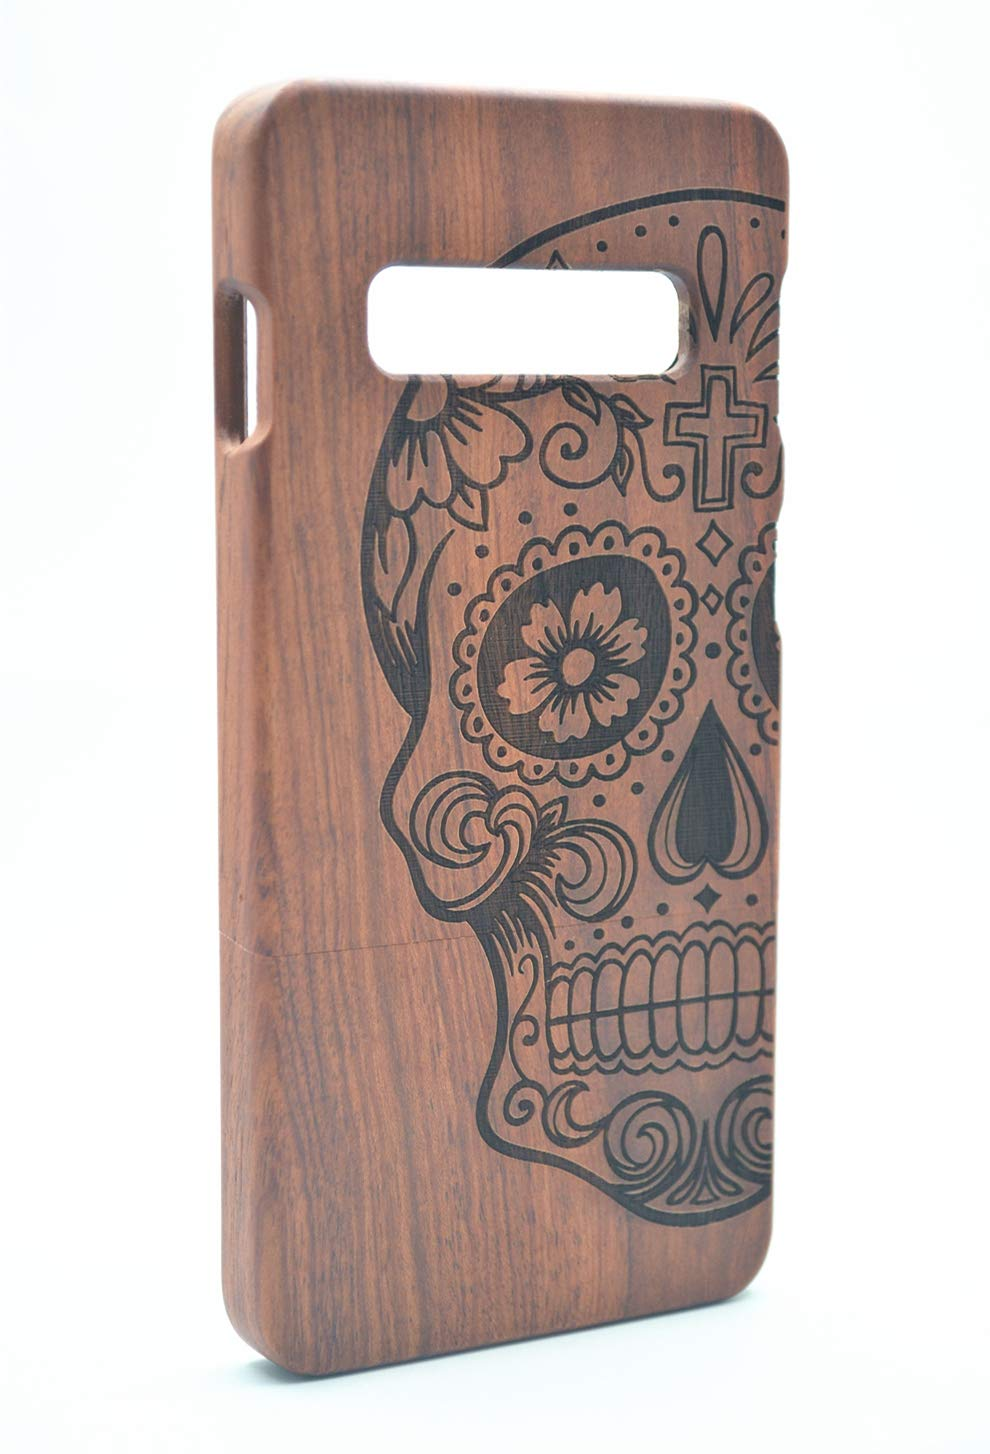 PhantomSky Stylish Carved Pattern Wooden Case for Samsung Galaxy S10e, Premium Quality Handmade Natural Wood Hard Case Non-Slip Shockproof Design Protective Cover - Rosewood Skull by PhantomSky